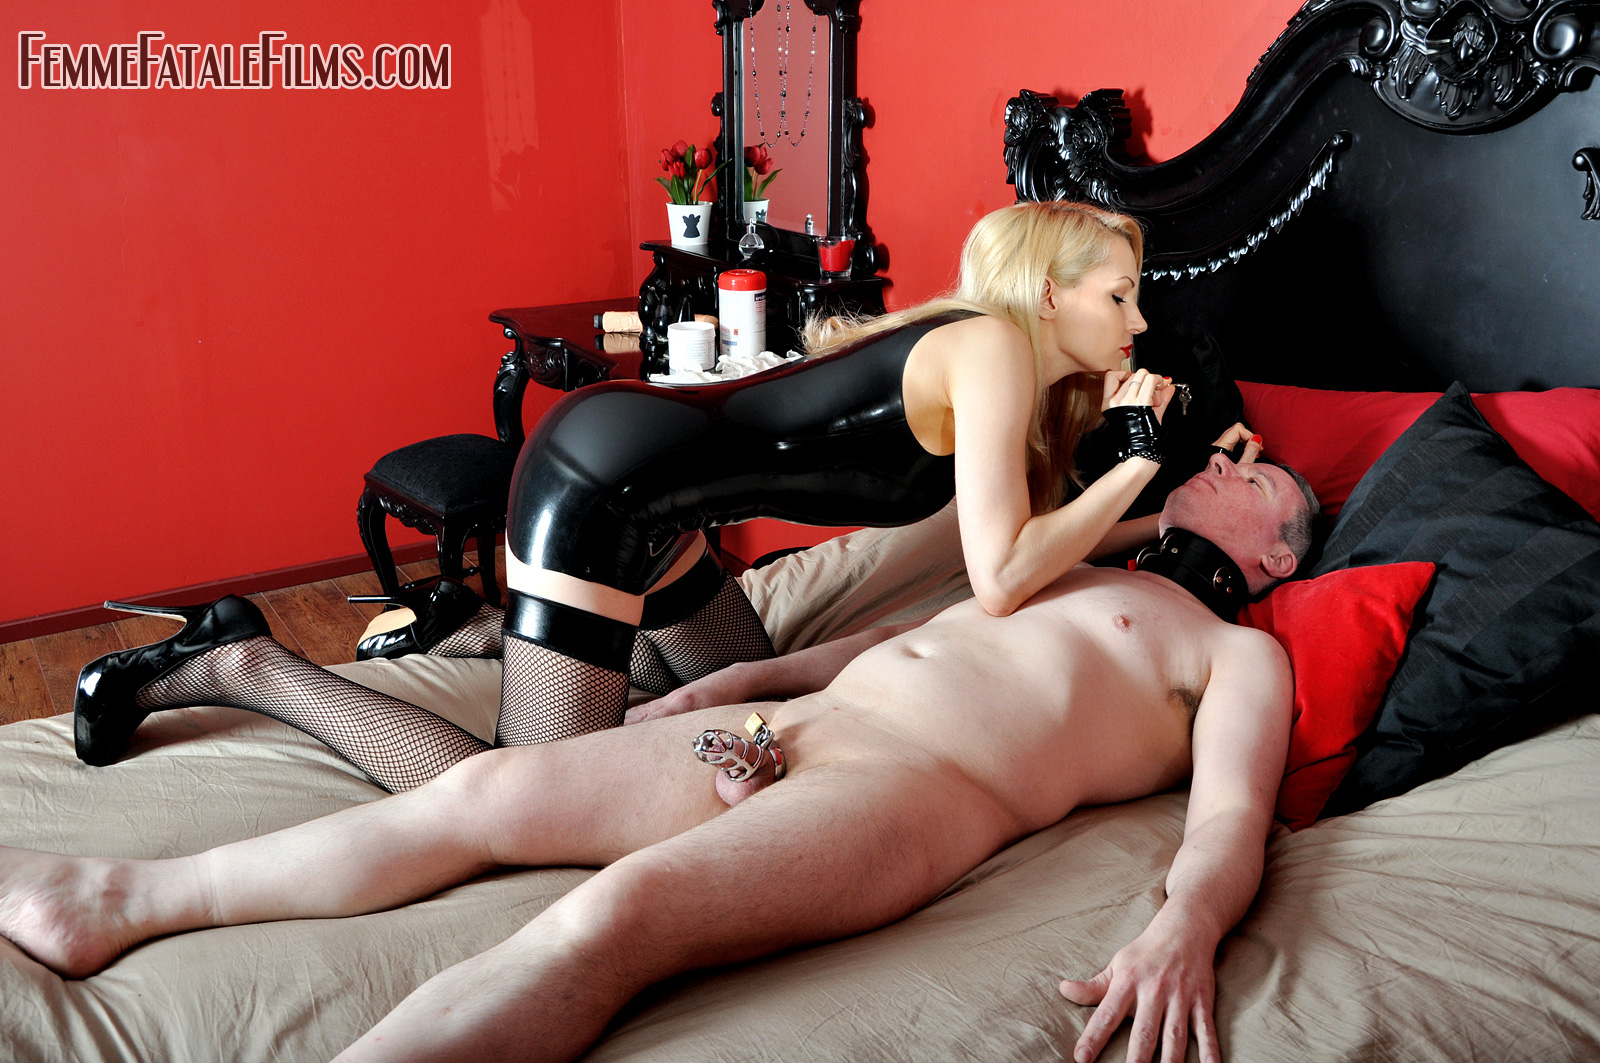 Dominatrix porn video